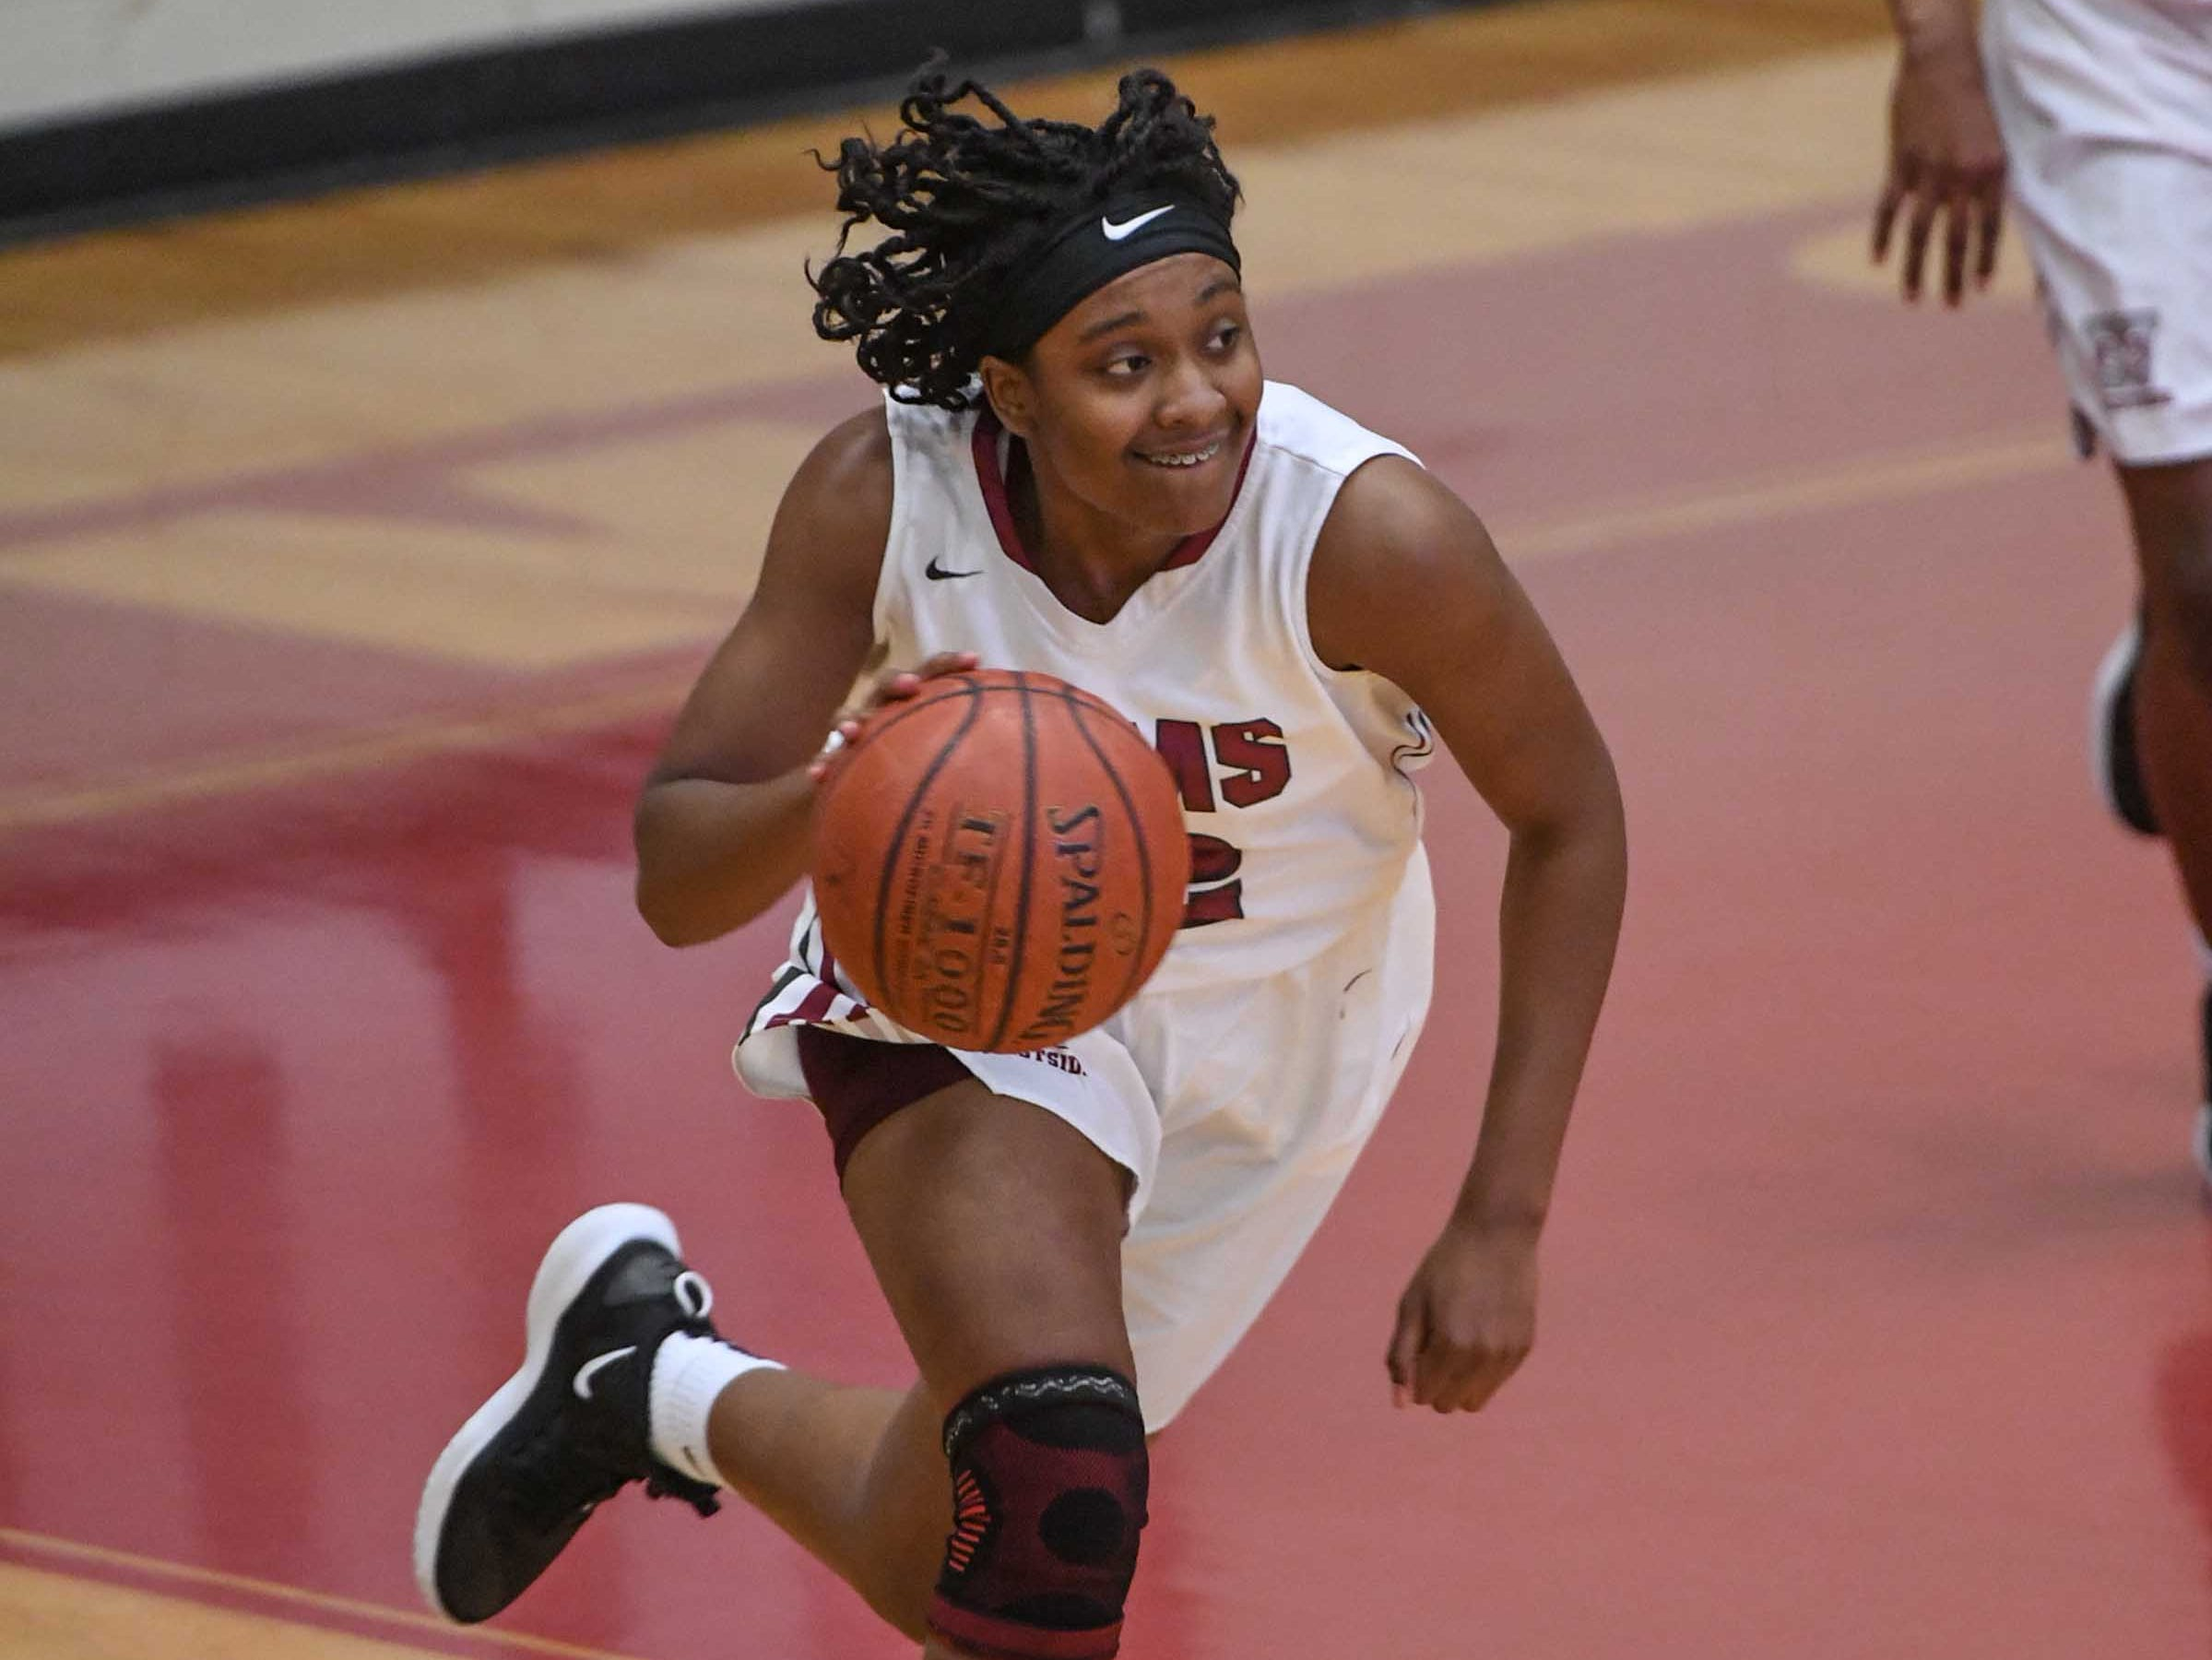 Westside freshman Branya Pruitt(12) dribbles against Easley during the fourth quarter at Westside High School in Anderson on Friday.